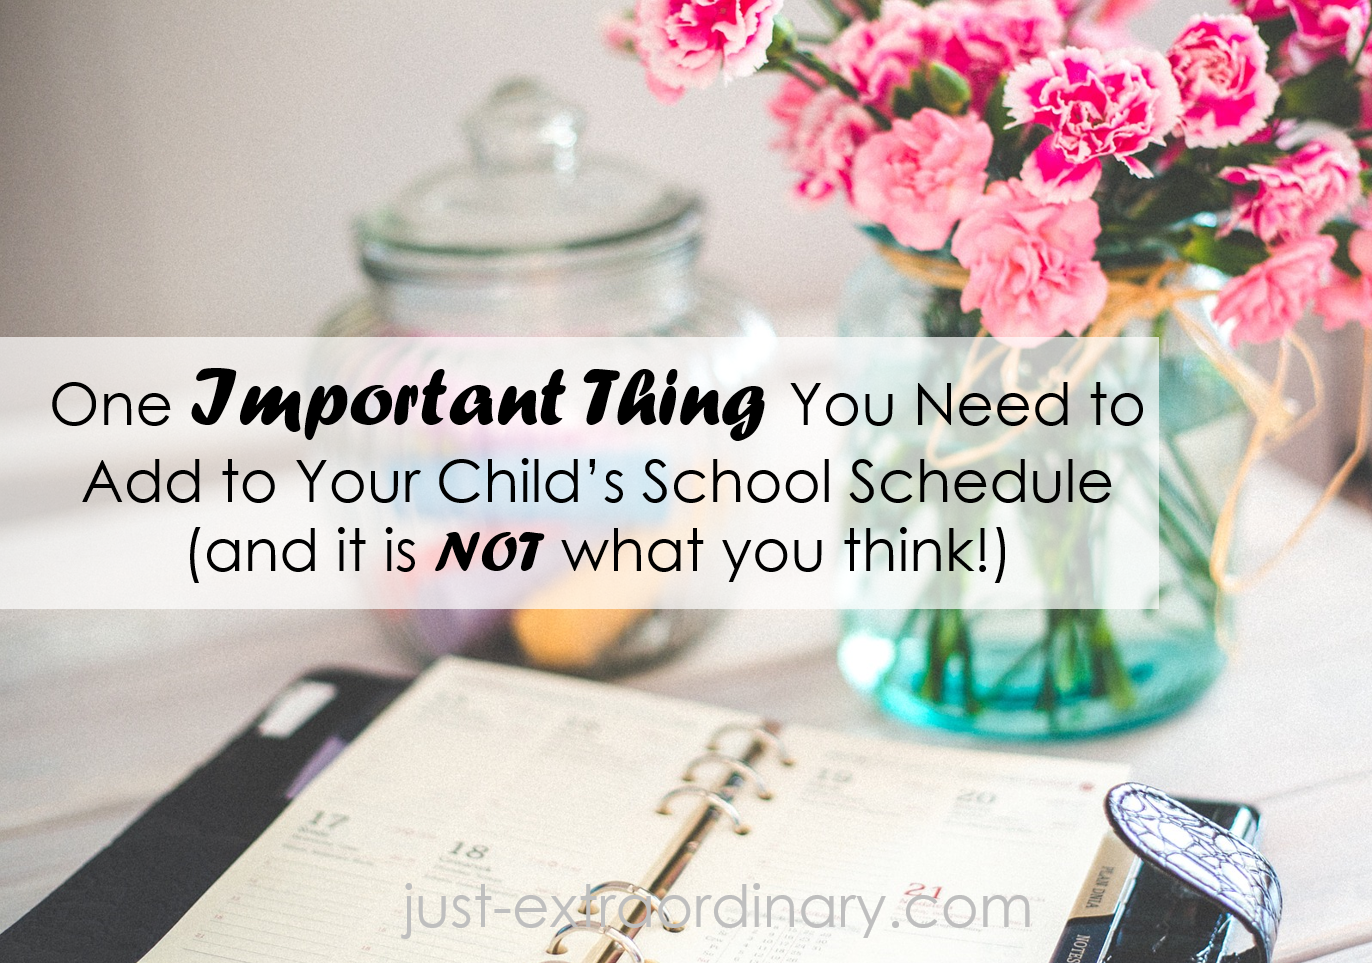 just-extraordinary.com One Important Thing to Add to Your Child's Schedule